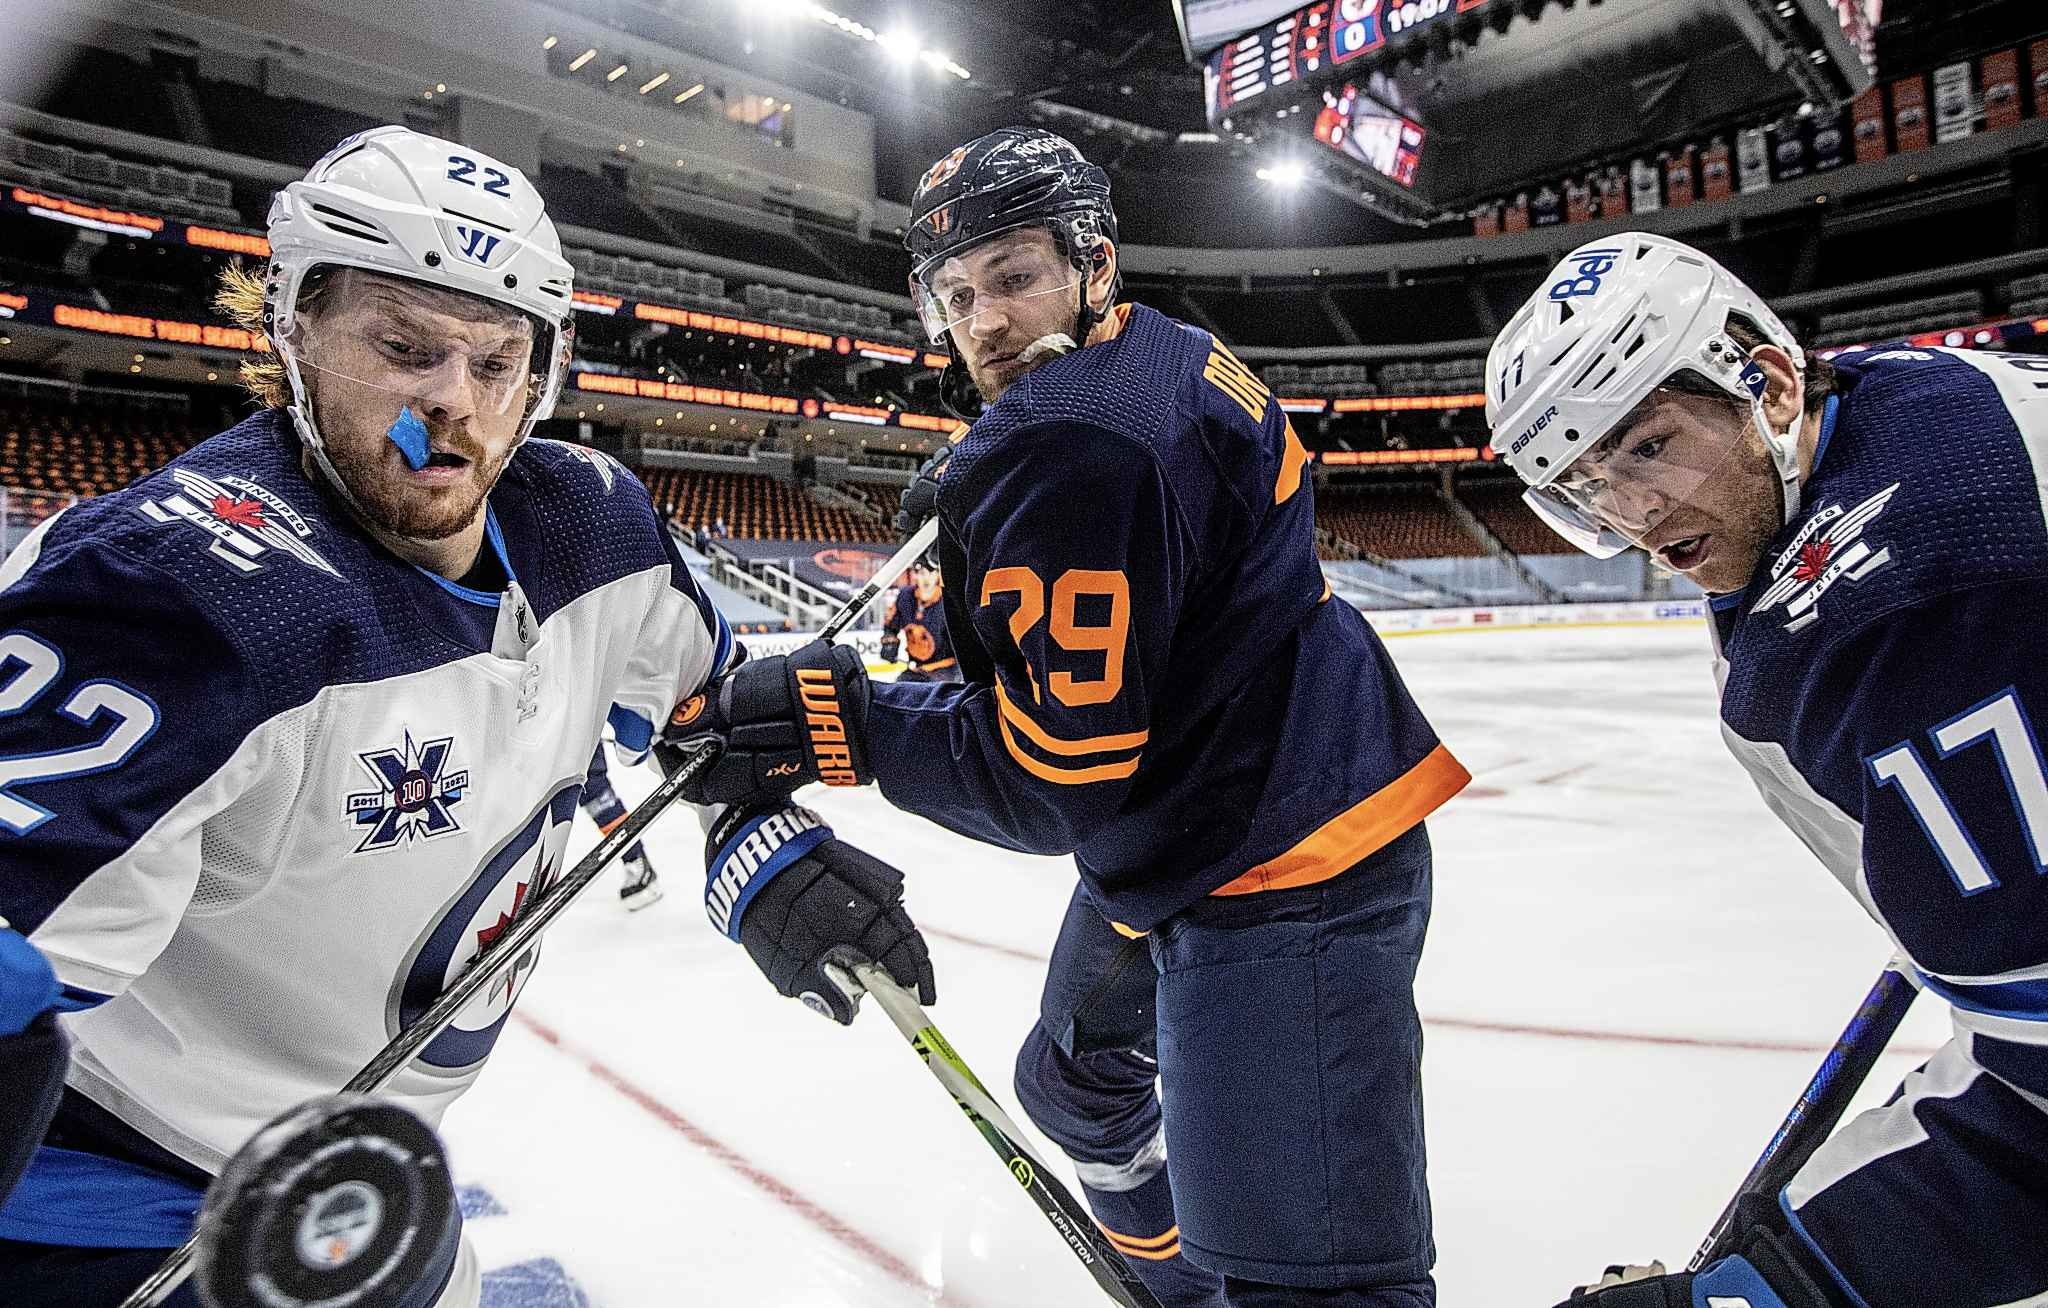 Edmonton Oilers' Leon Draisaitl and Winnipeg Jets' Mason Appleton and Adam Lowry battle for the puck during the first period. THE CANADIAN PRESS/Jason Franson